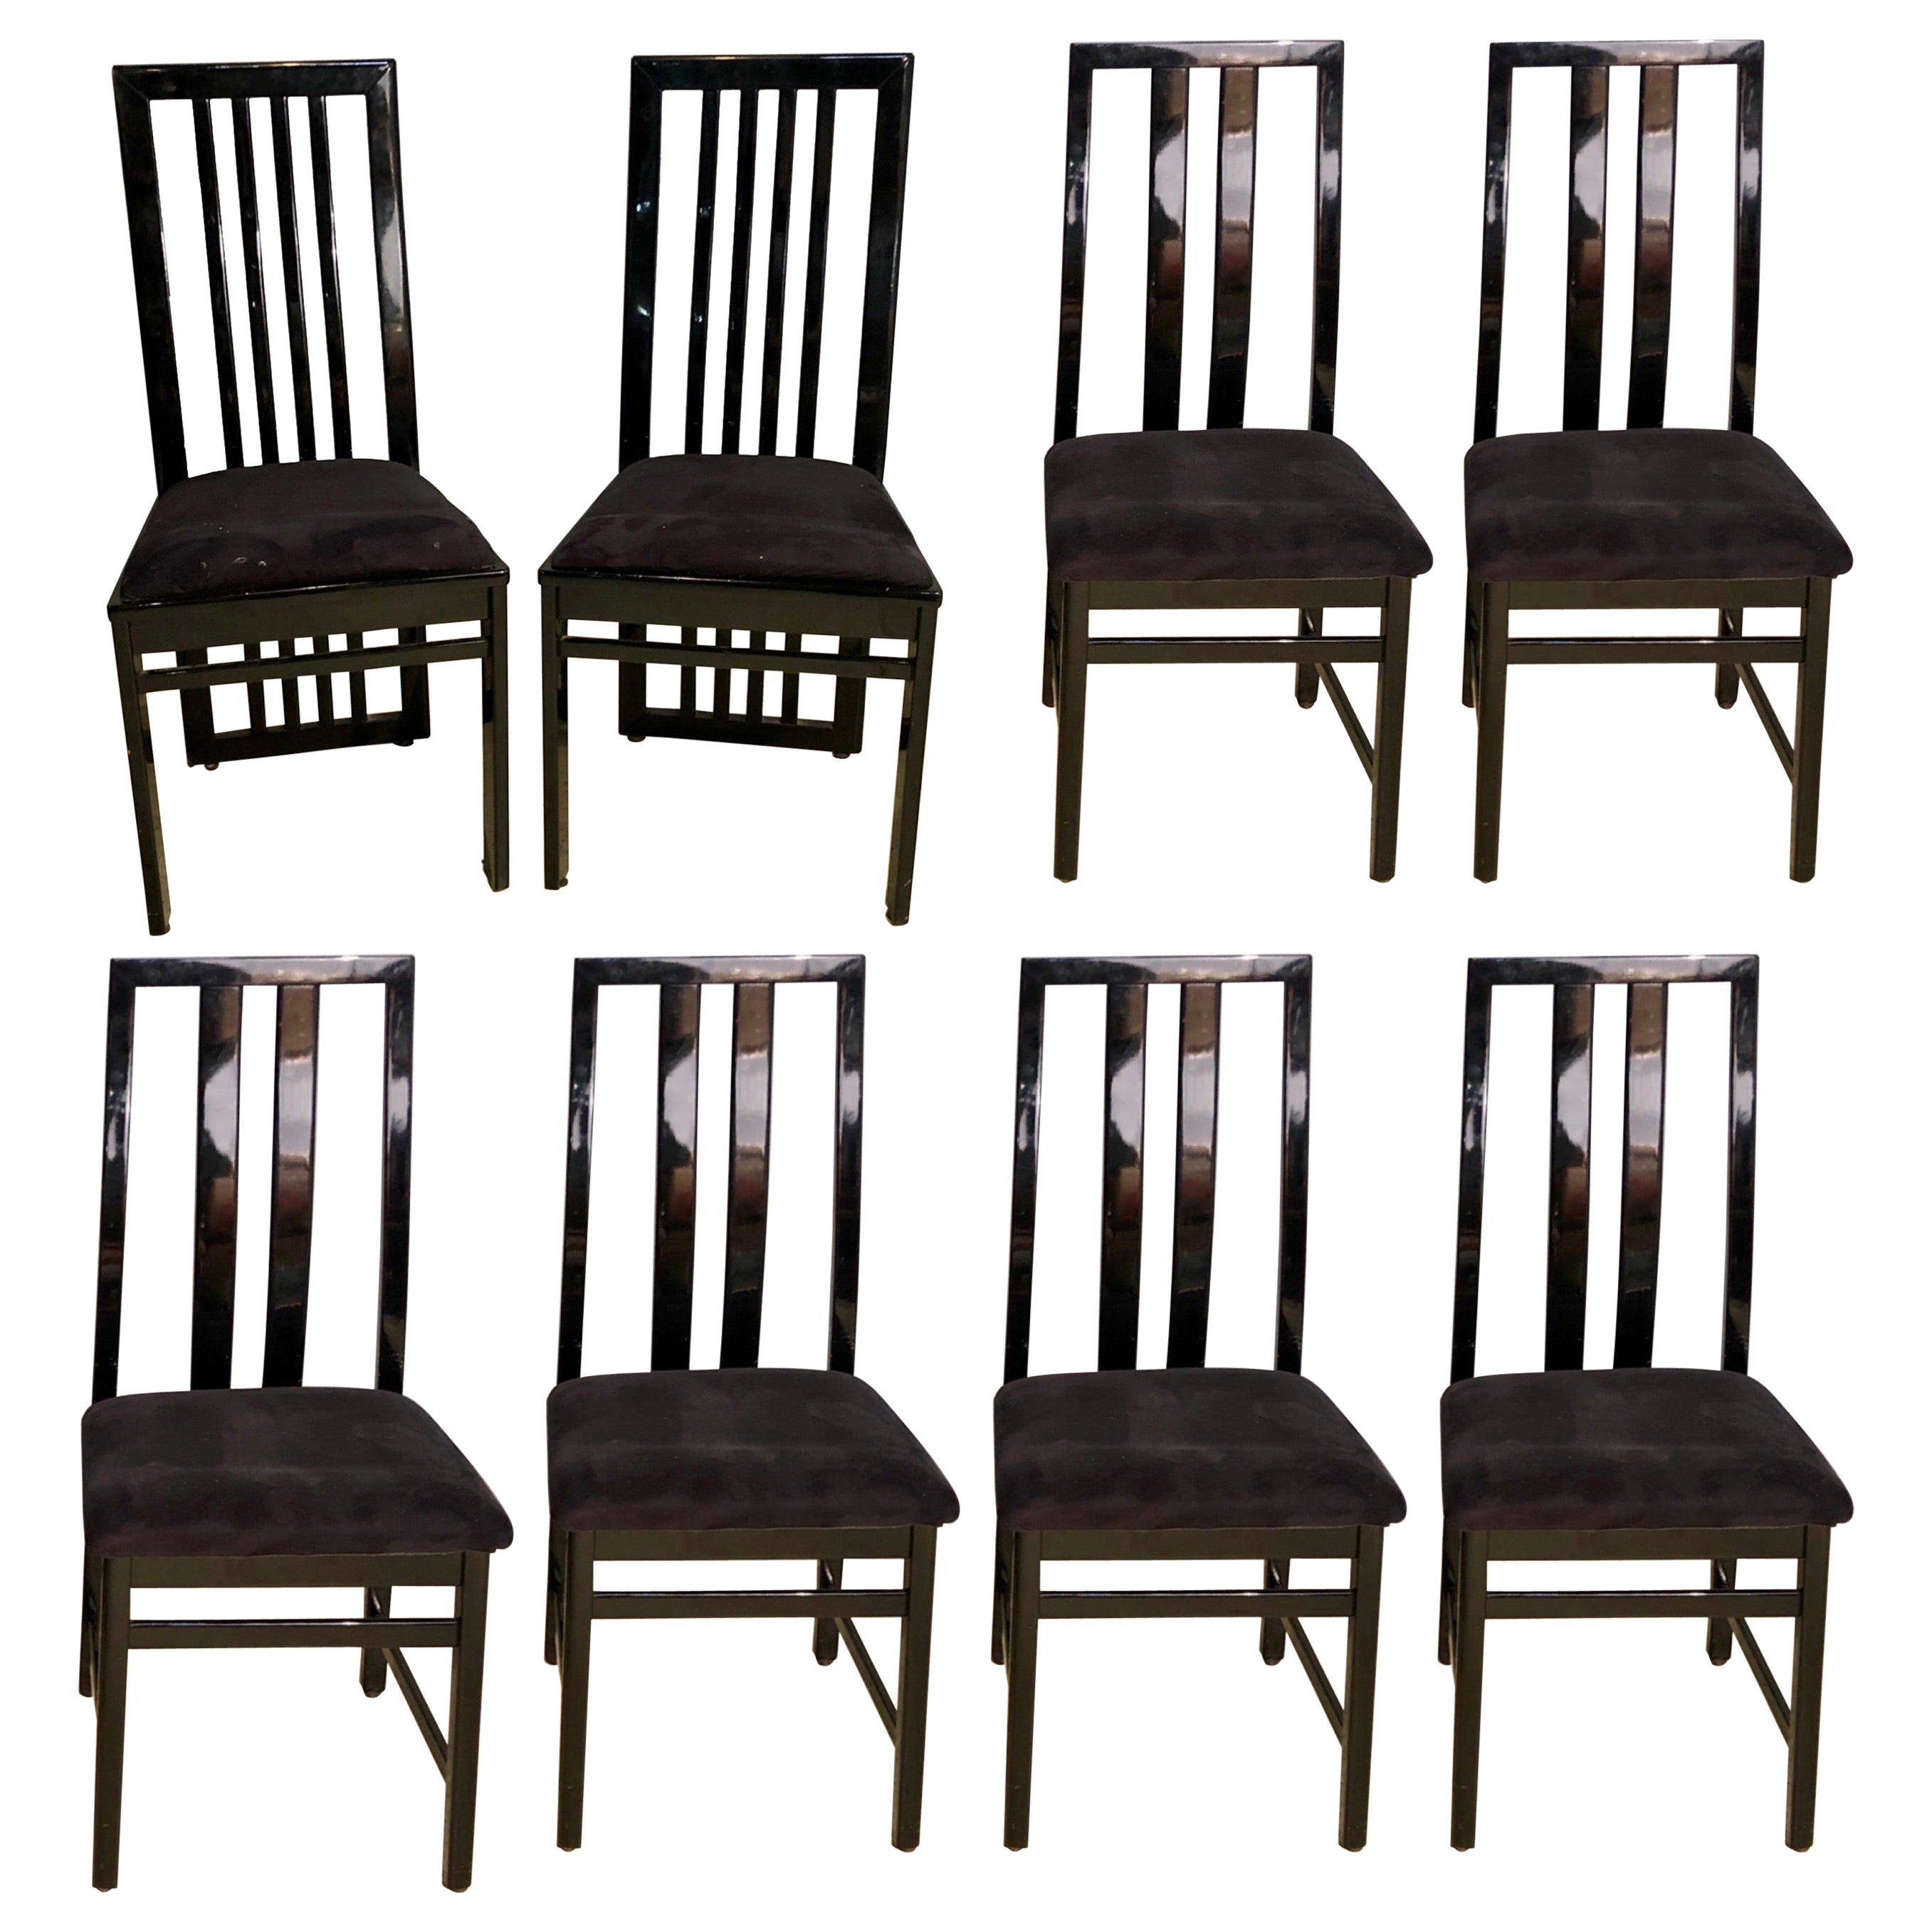 Set of Eight M.E.A Dining Chairs, Modern Italian Designer Black Lacquered